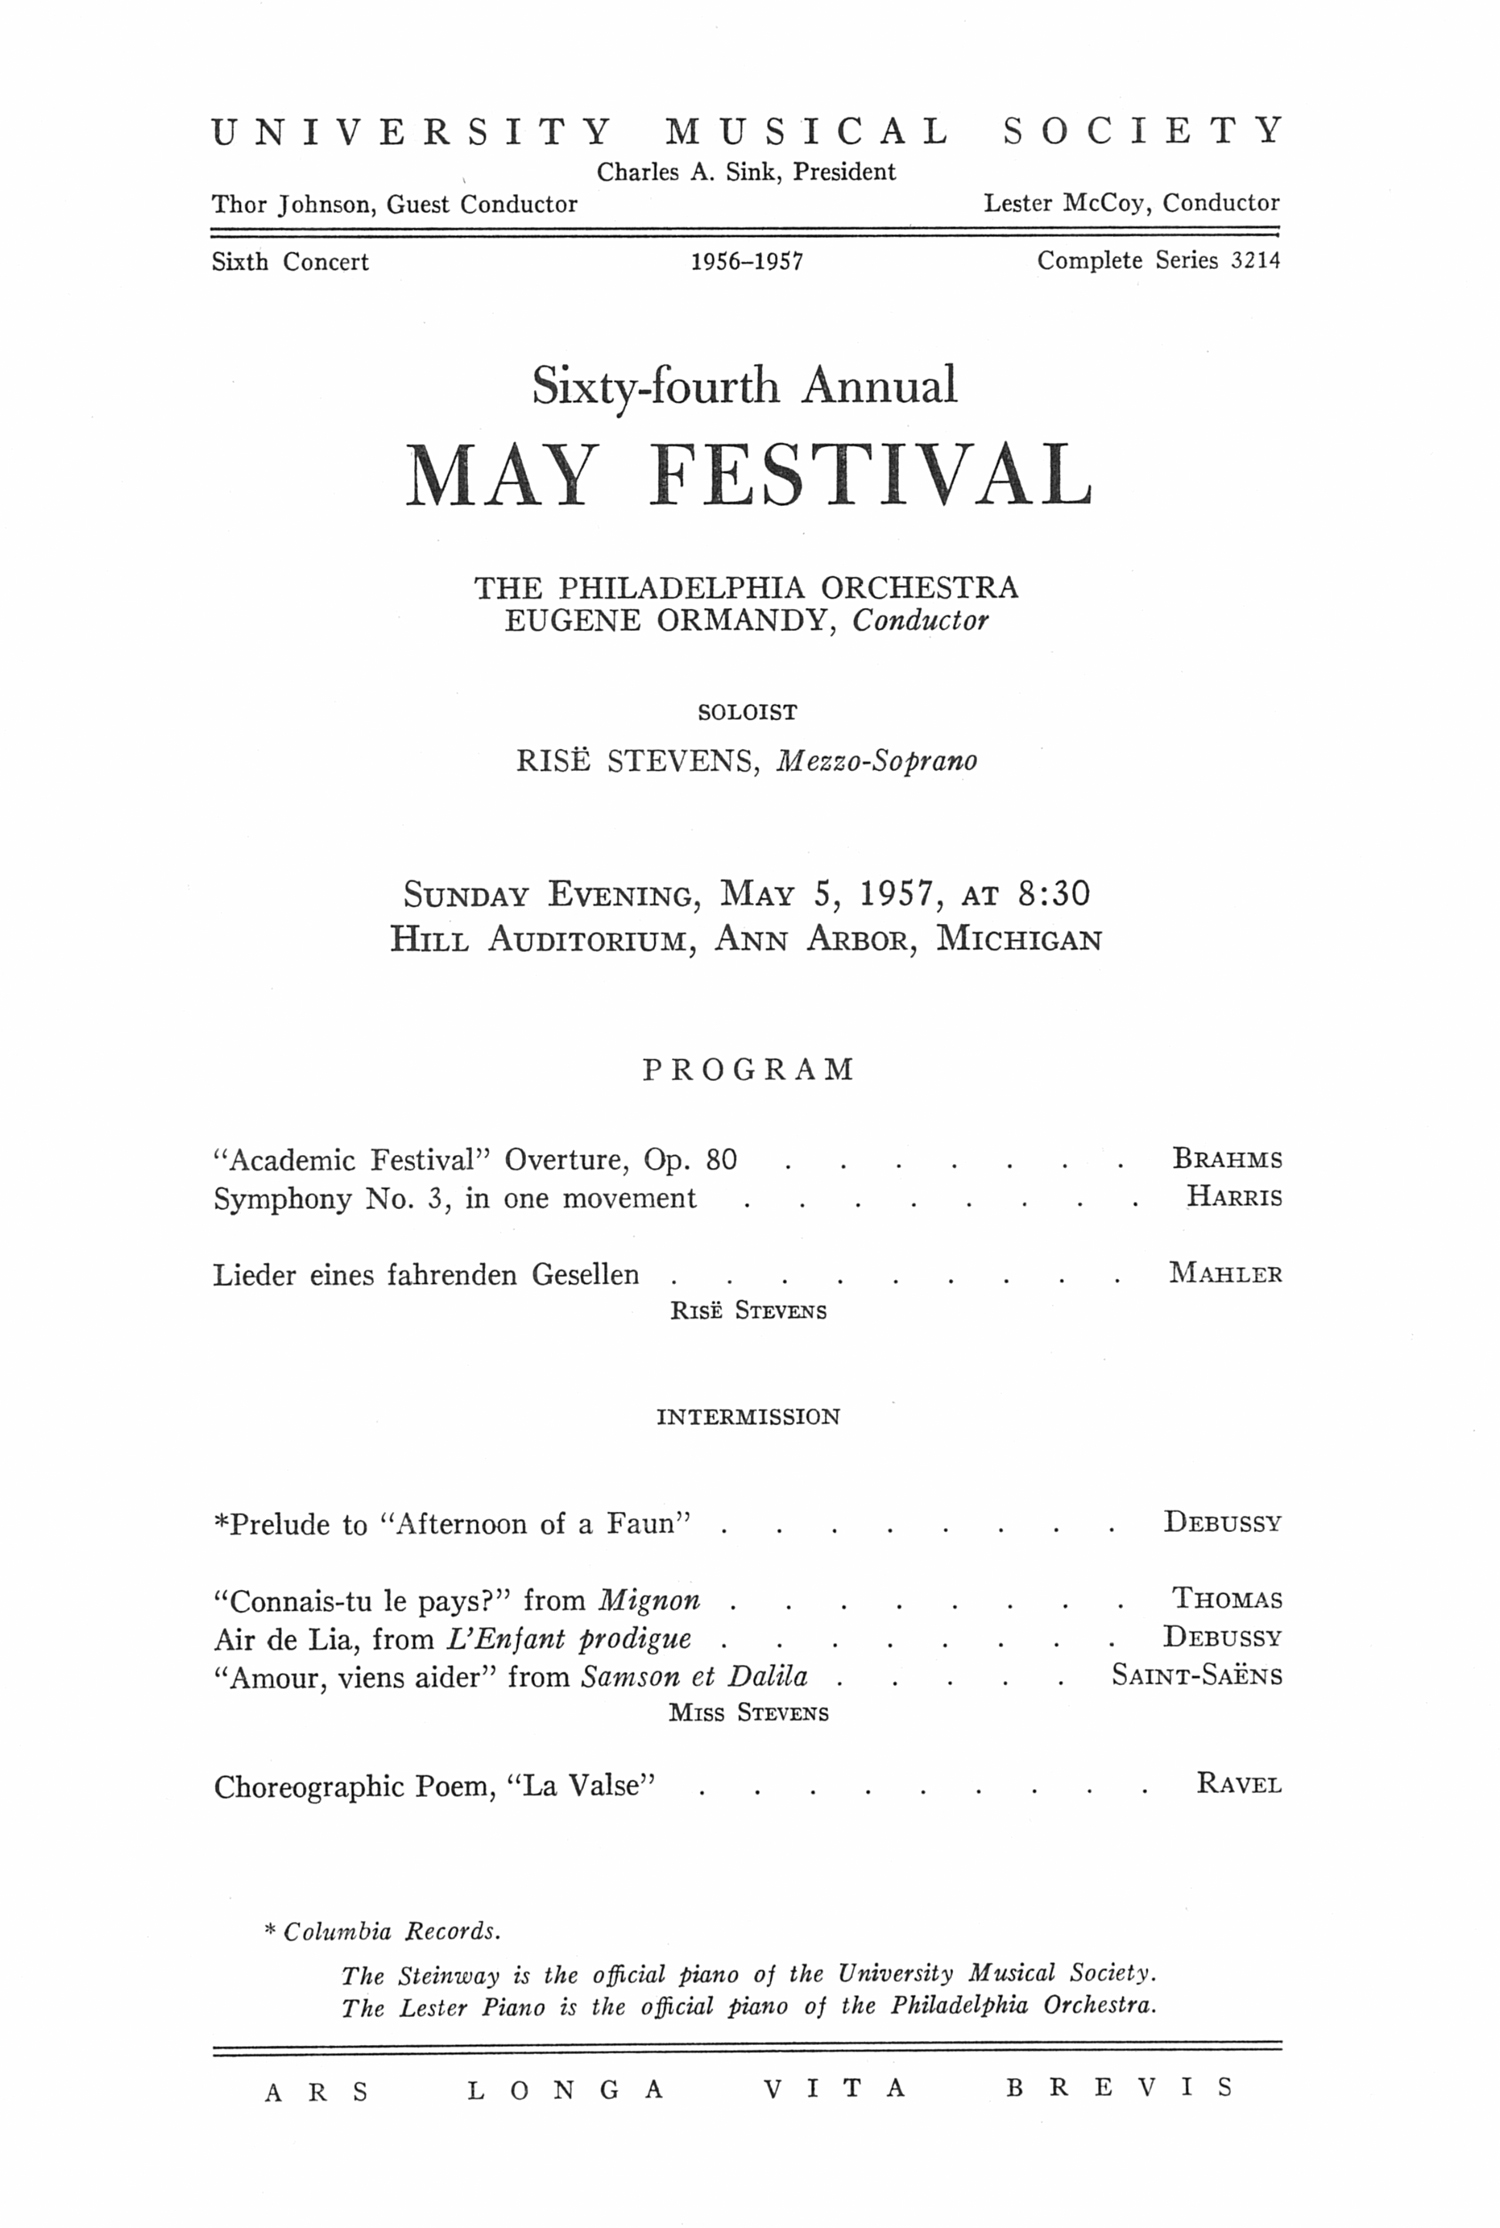 UMS Concert Program, May 5, 1957: Sixty-fourth Annual May Festival -- The Philadelphia Orchestra image